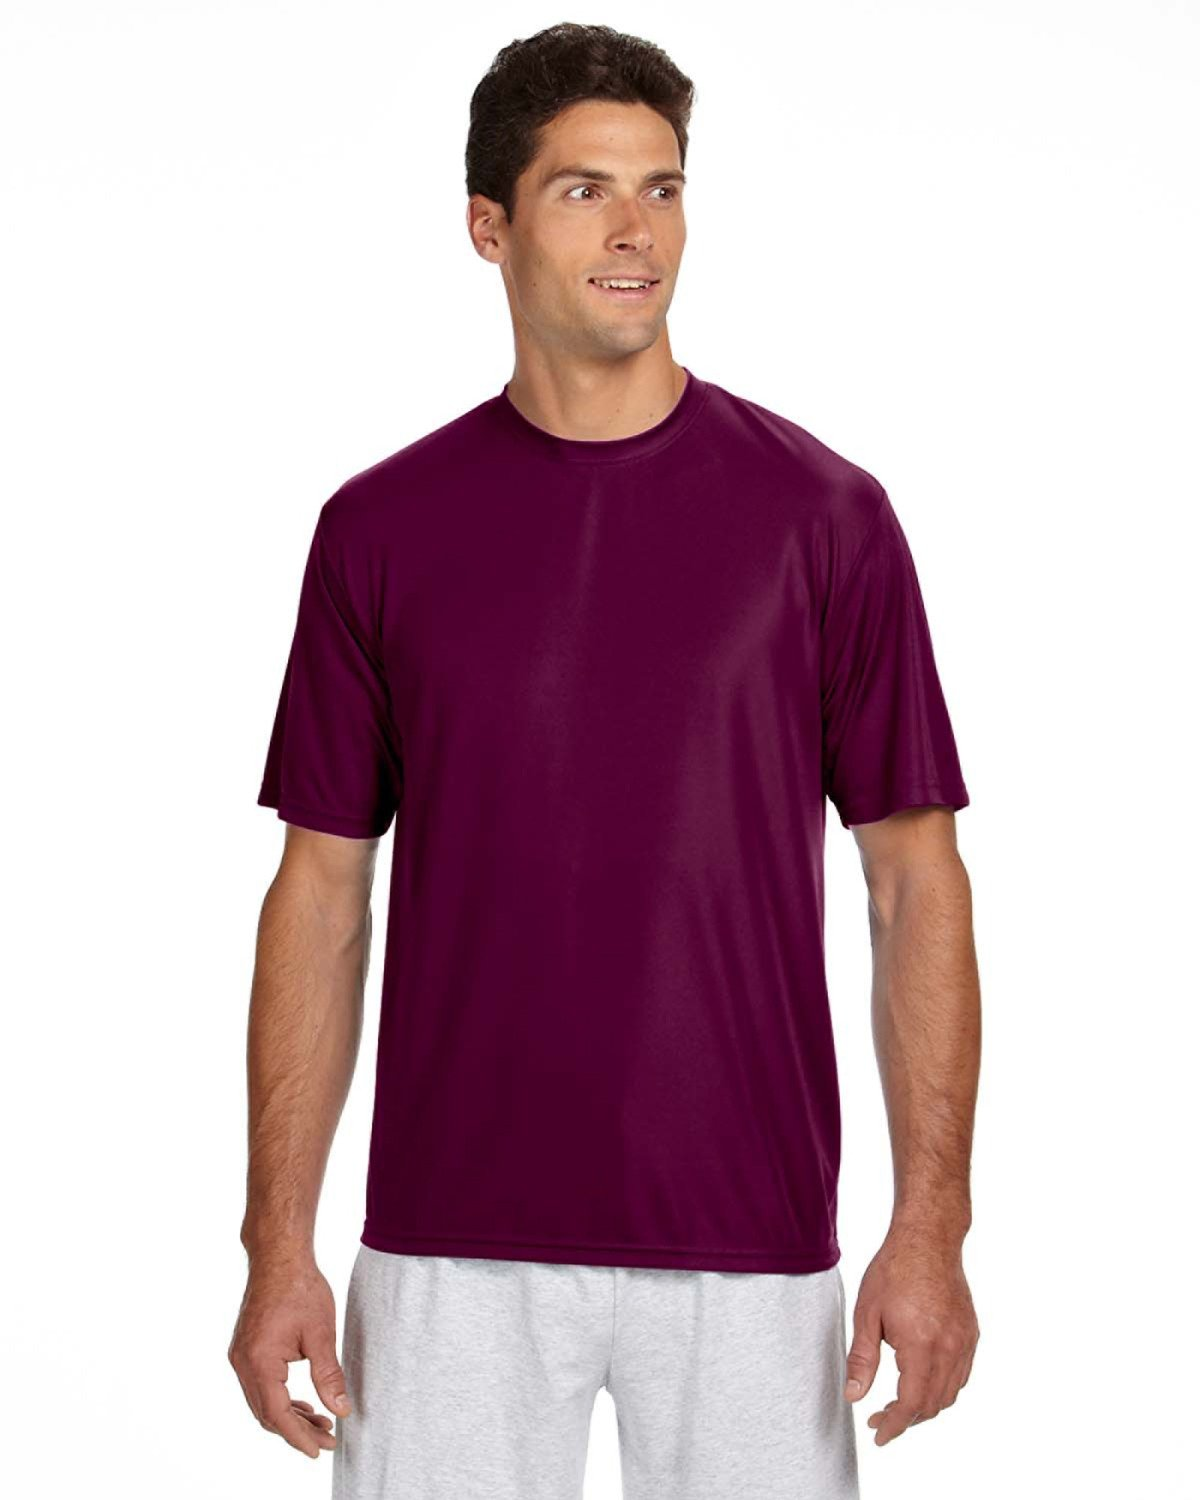 A4 Men's Cooling Performance T-Shirt MAROON